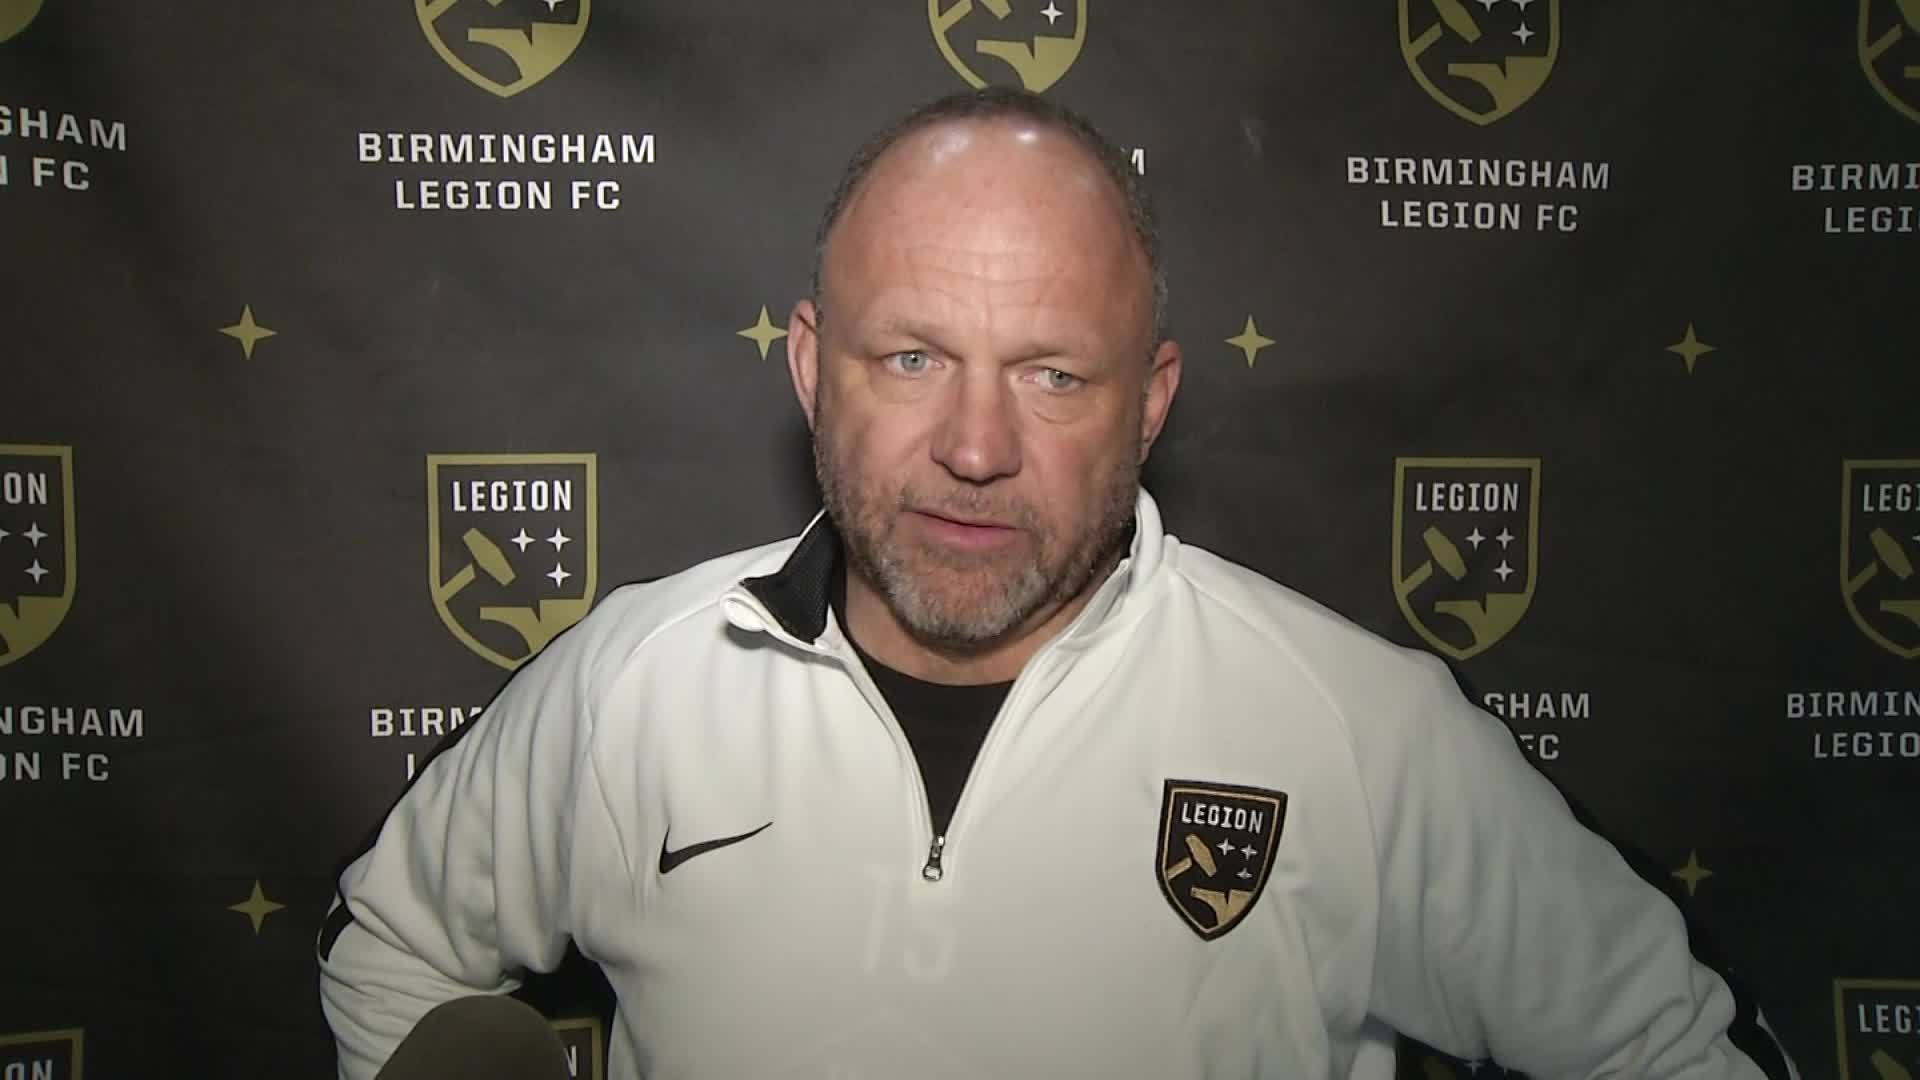 Birmingham's Pro Soccer Team- Birmingham Legion FC Opens Pre-Season Training Camp